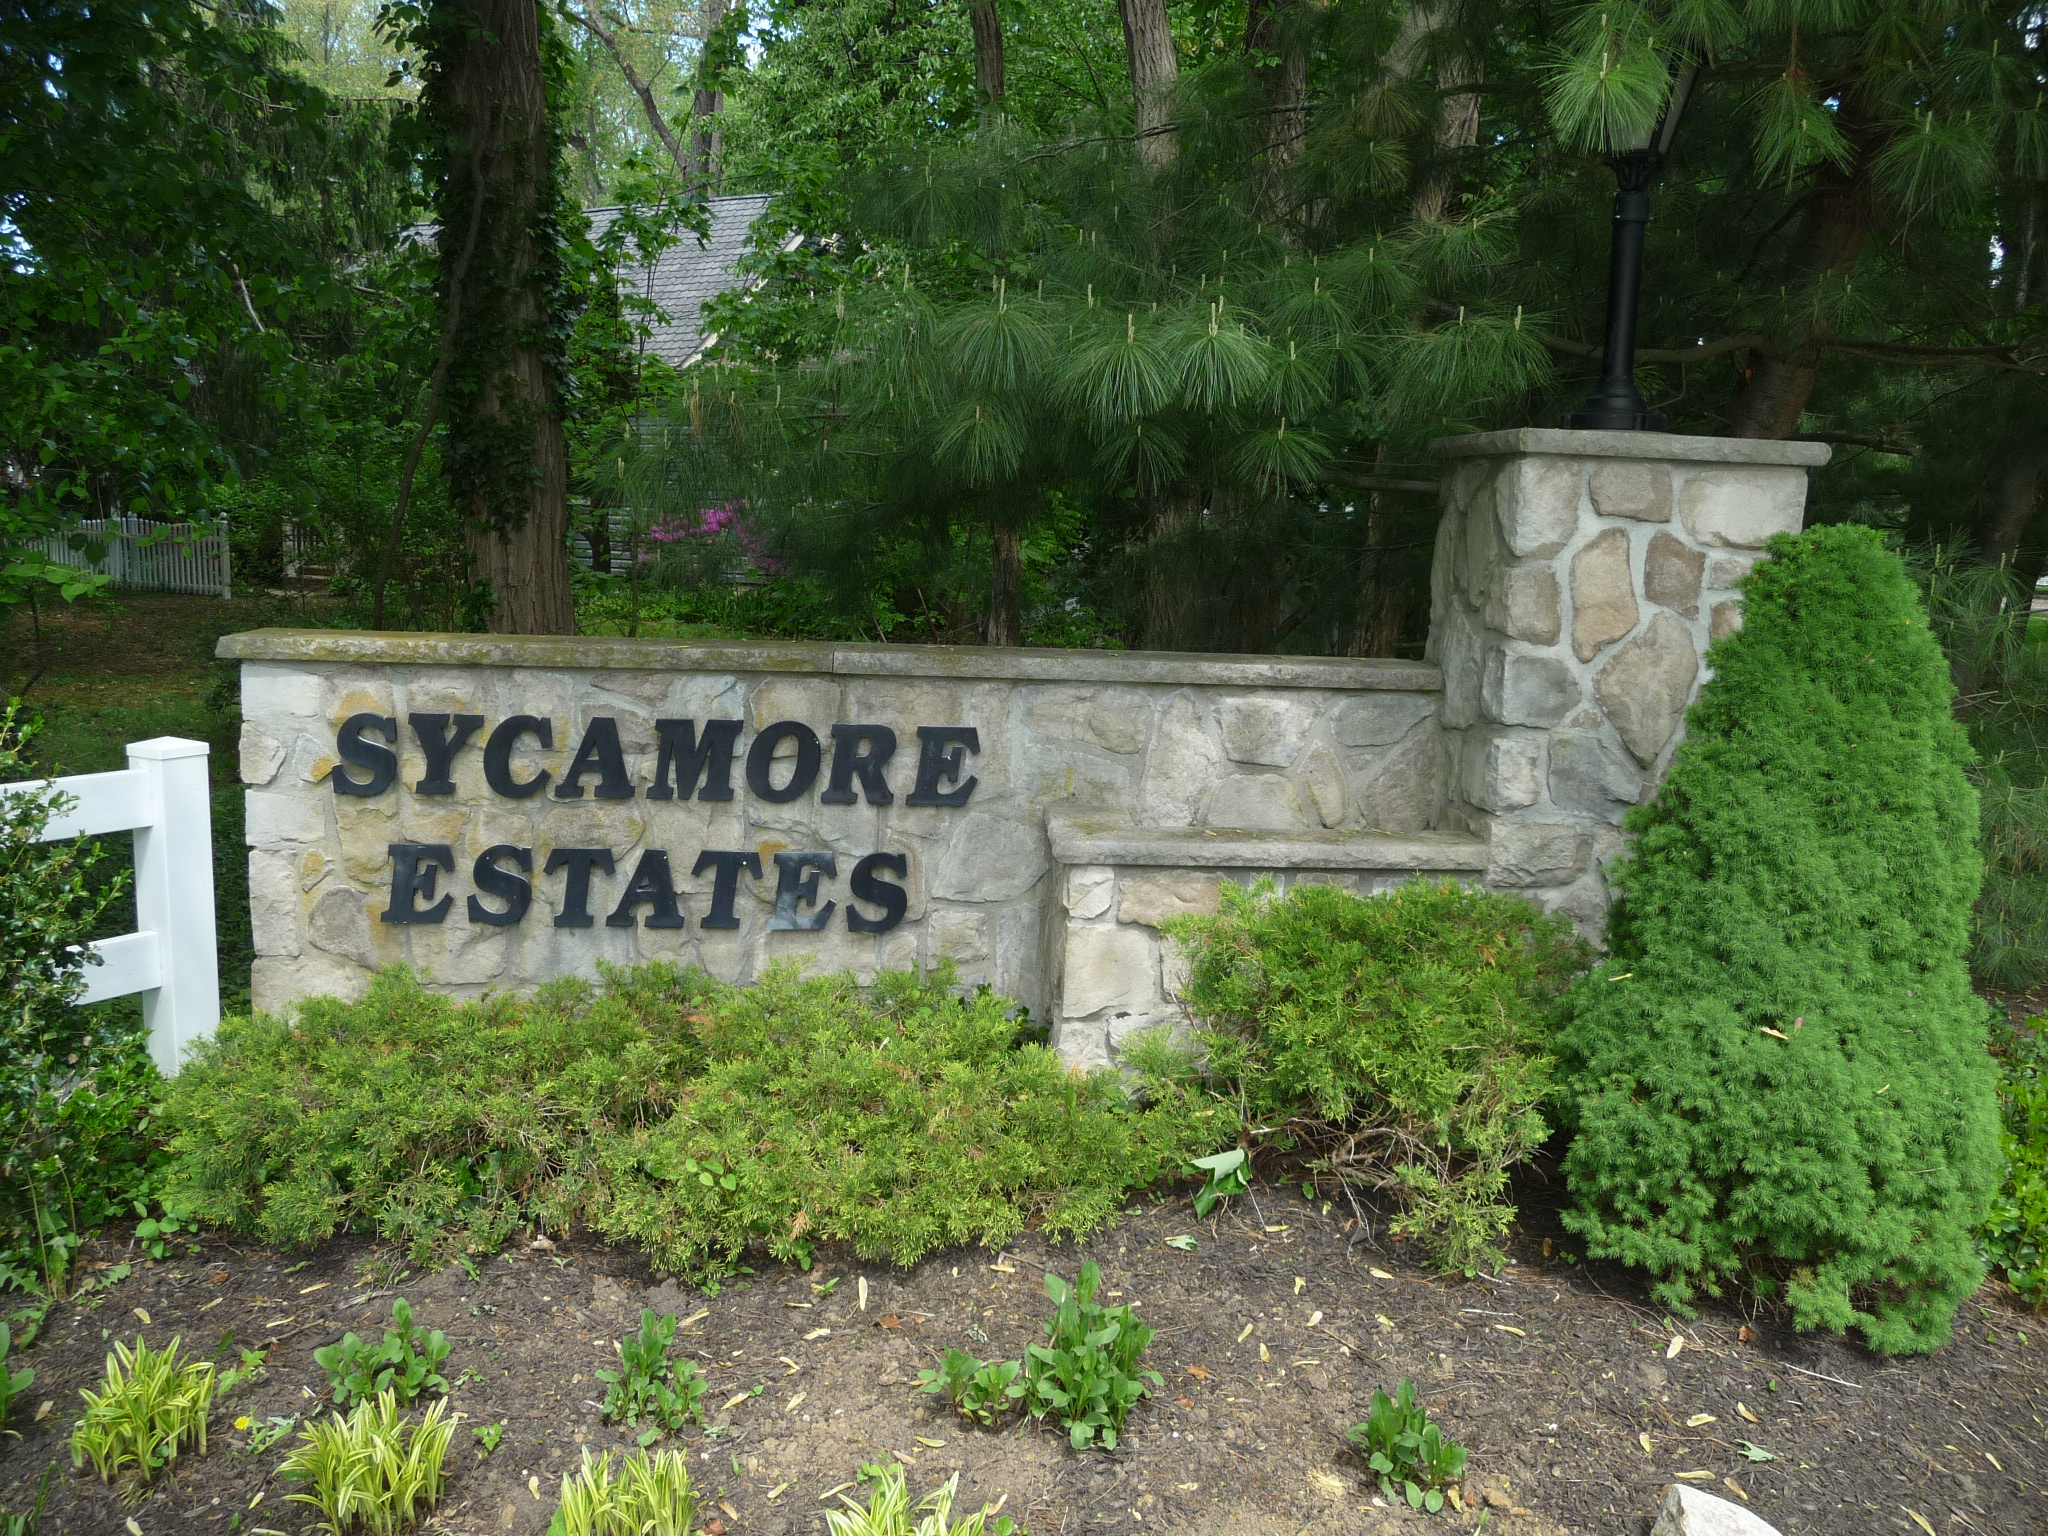 Sycamore Estates townhouses are on Hickory Lane in Little Silver NJ